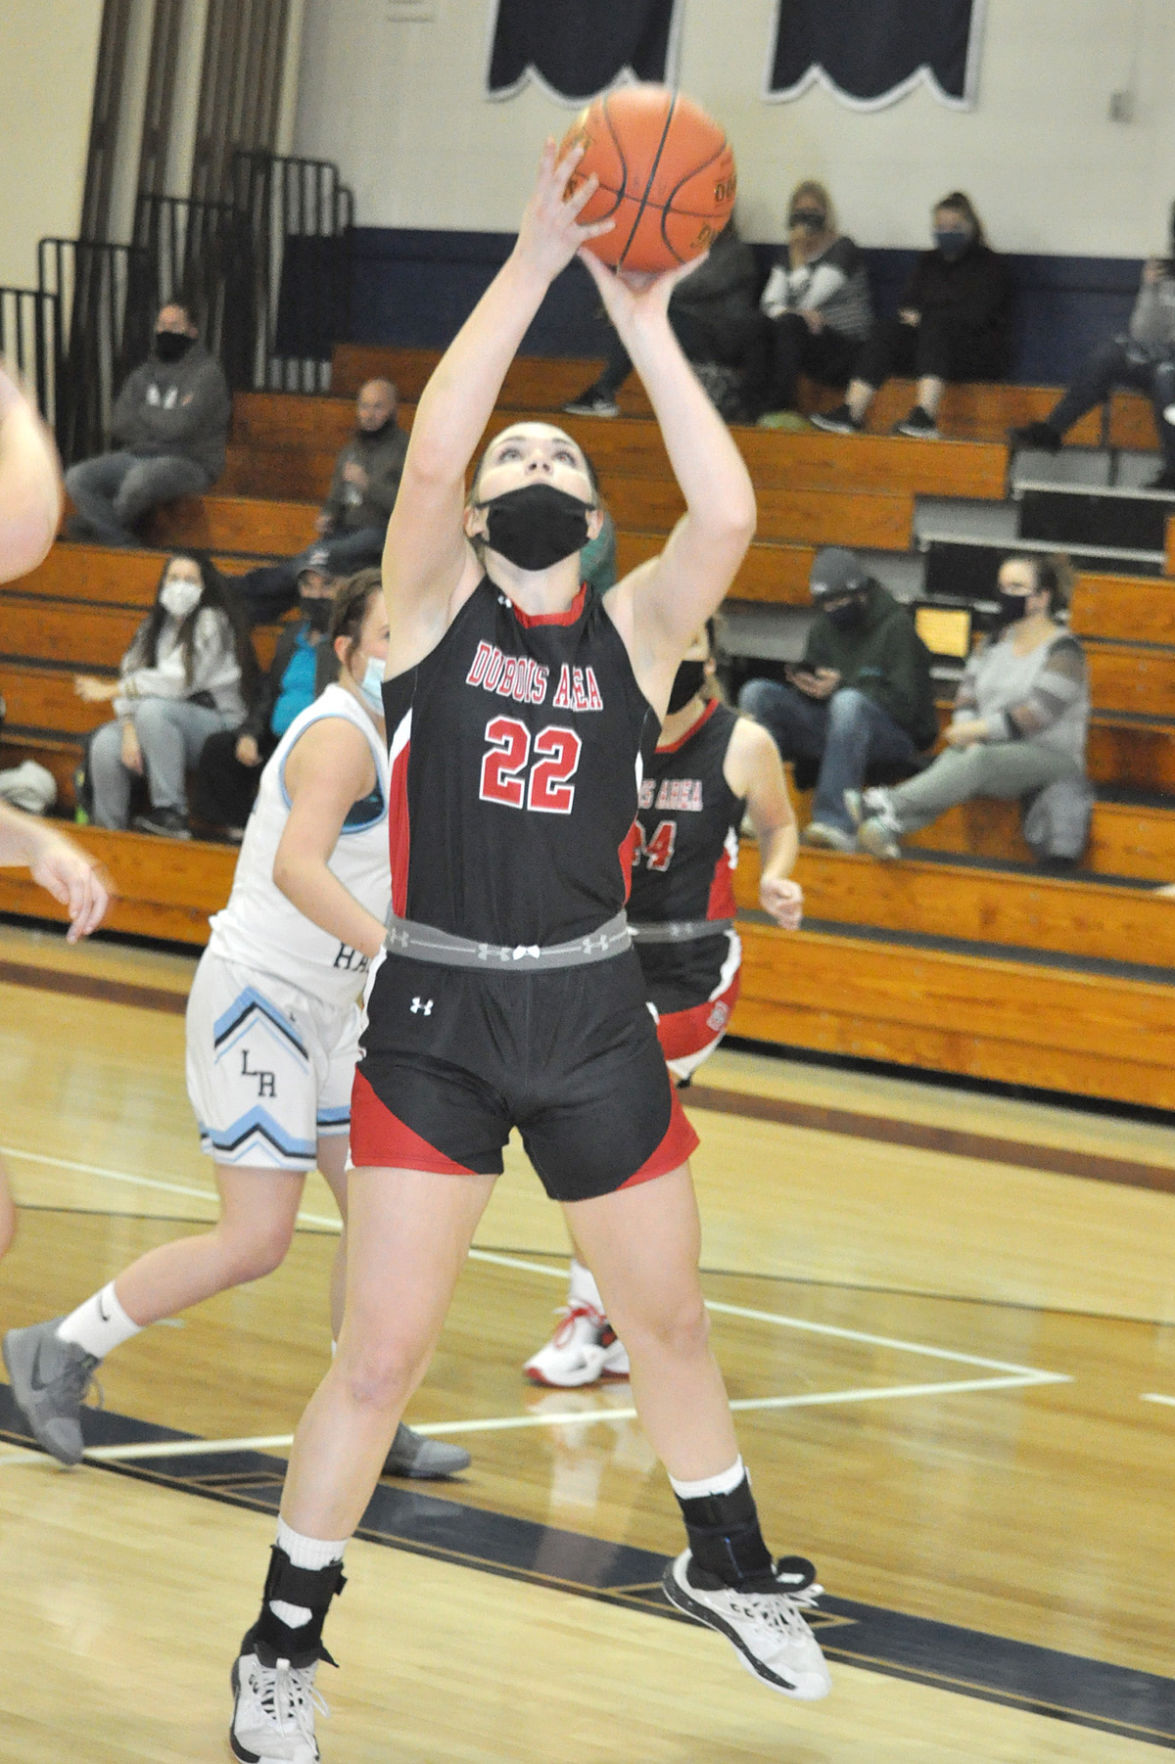 Saige Weible vs. Brookville.jpg